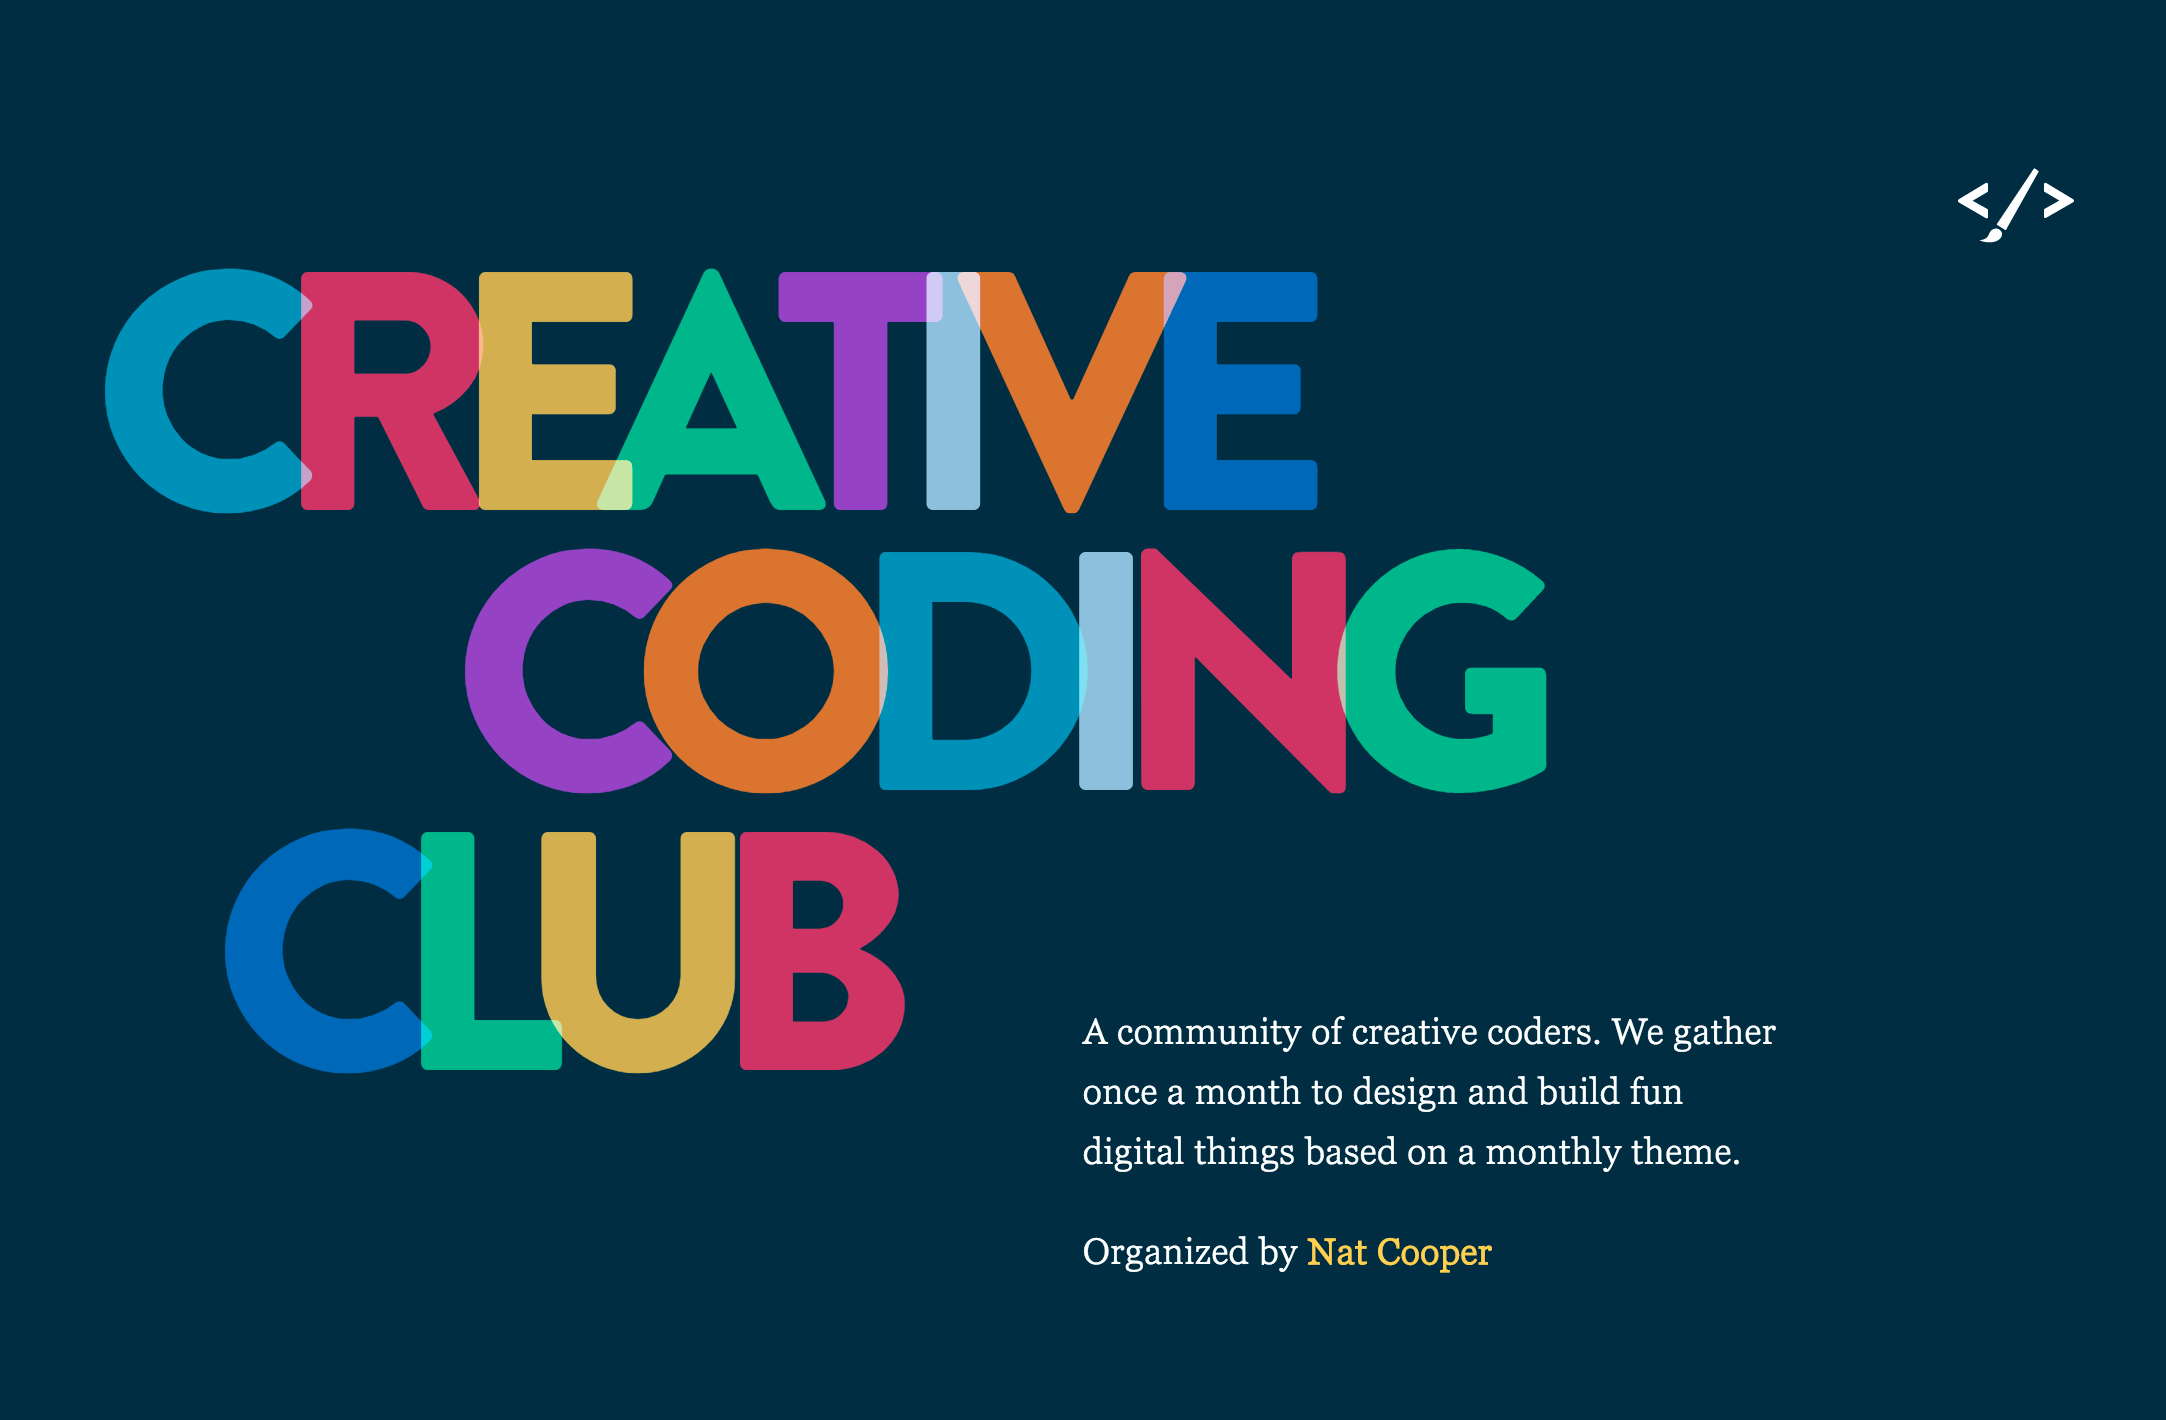 creative coding club css tricks